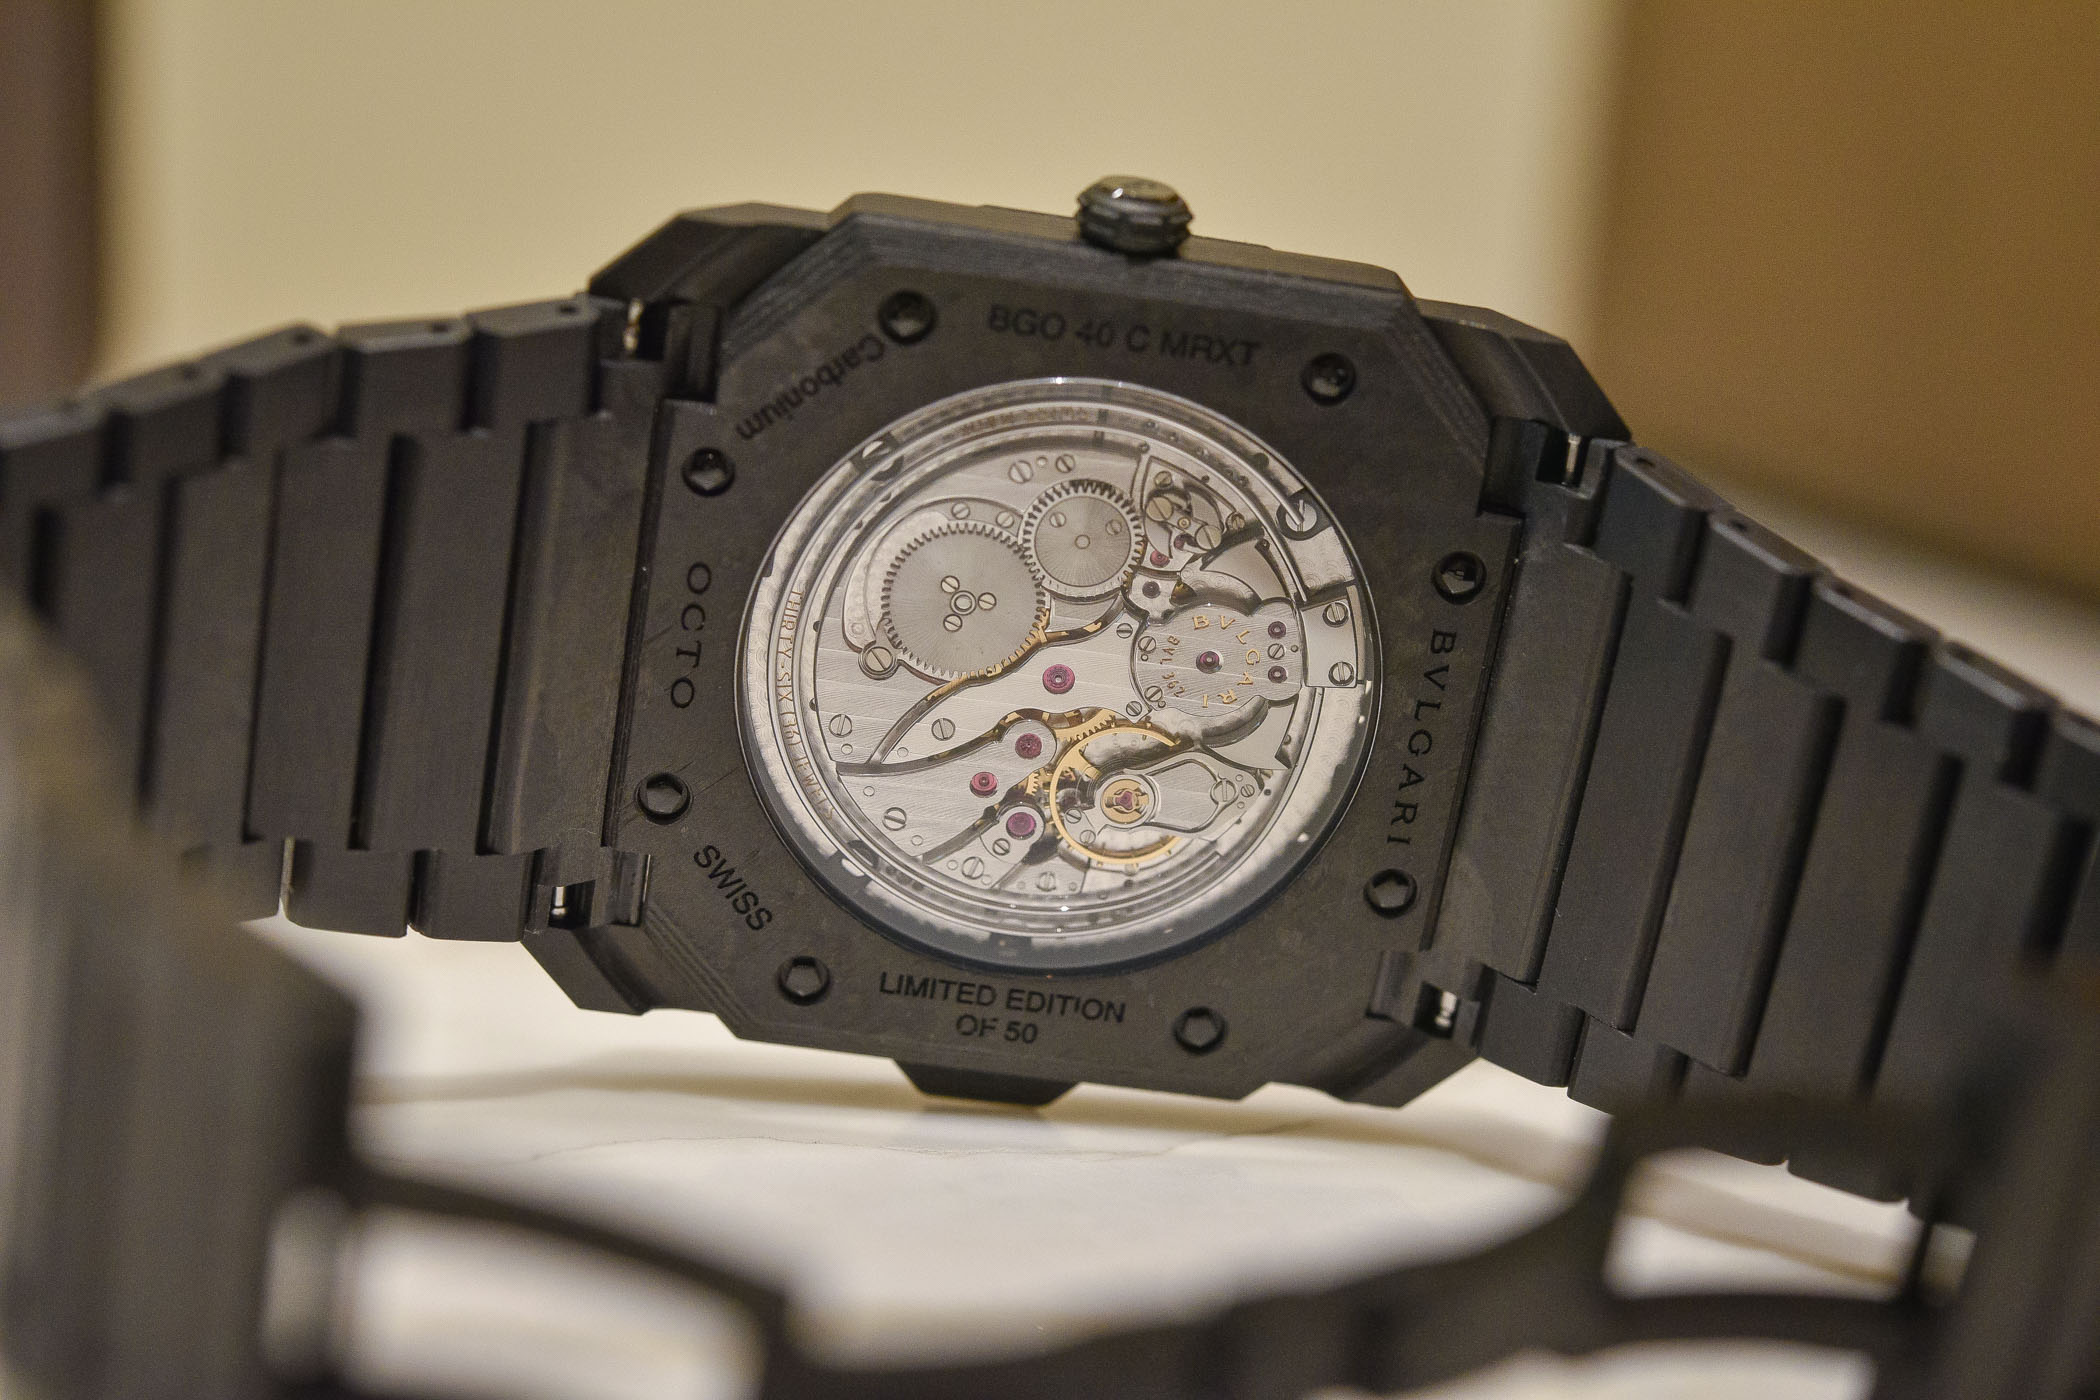 Bulgari Octo Finissimo Minute Repeater Carbon